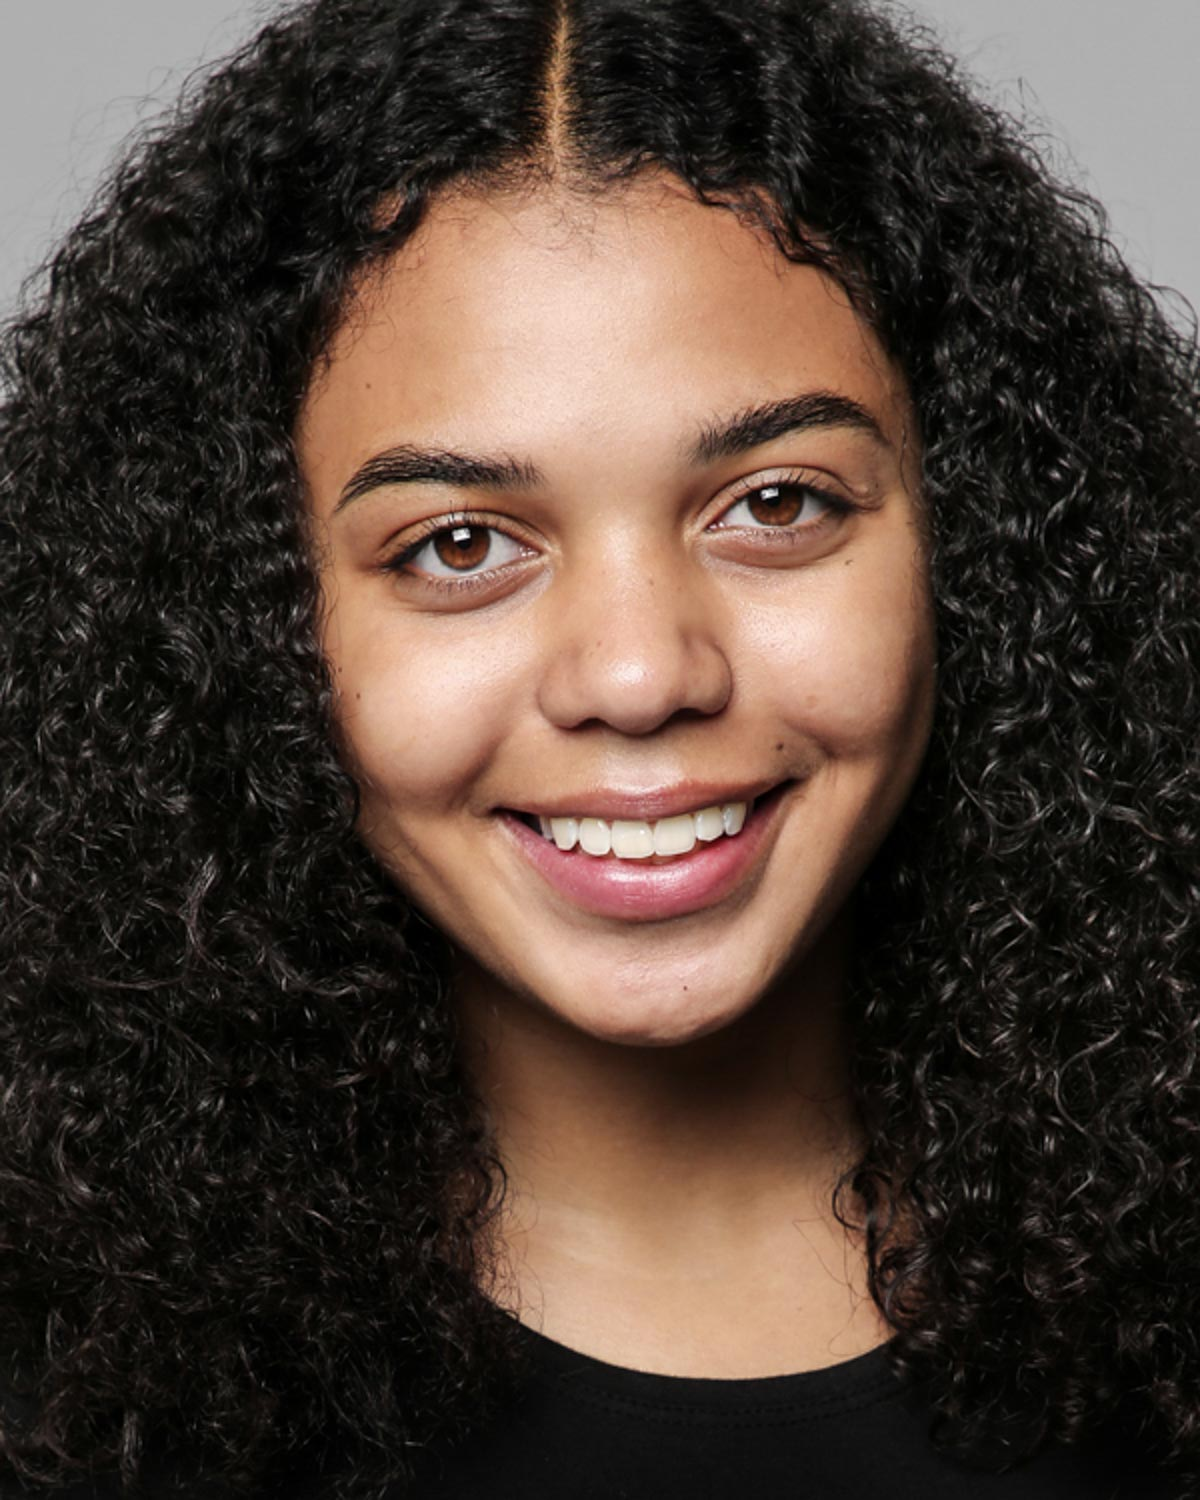 headshot of an adult actor